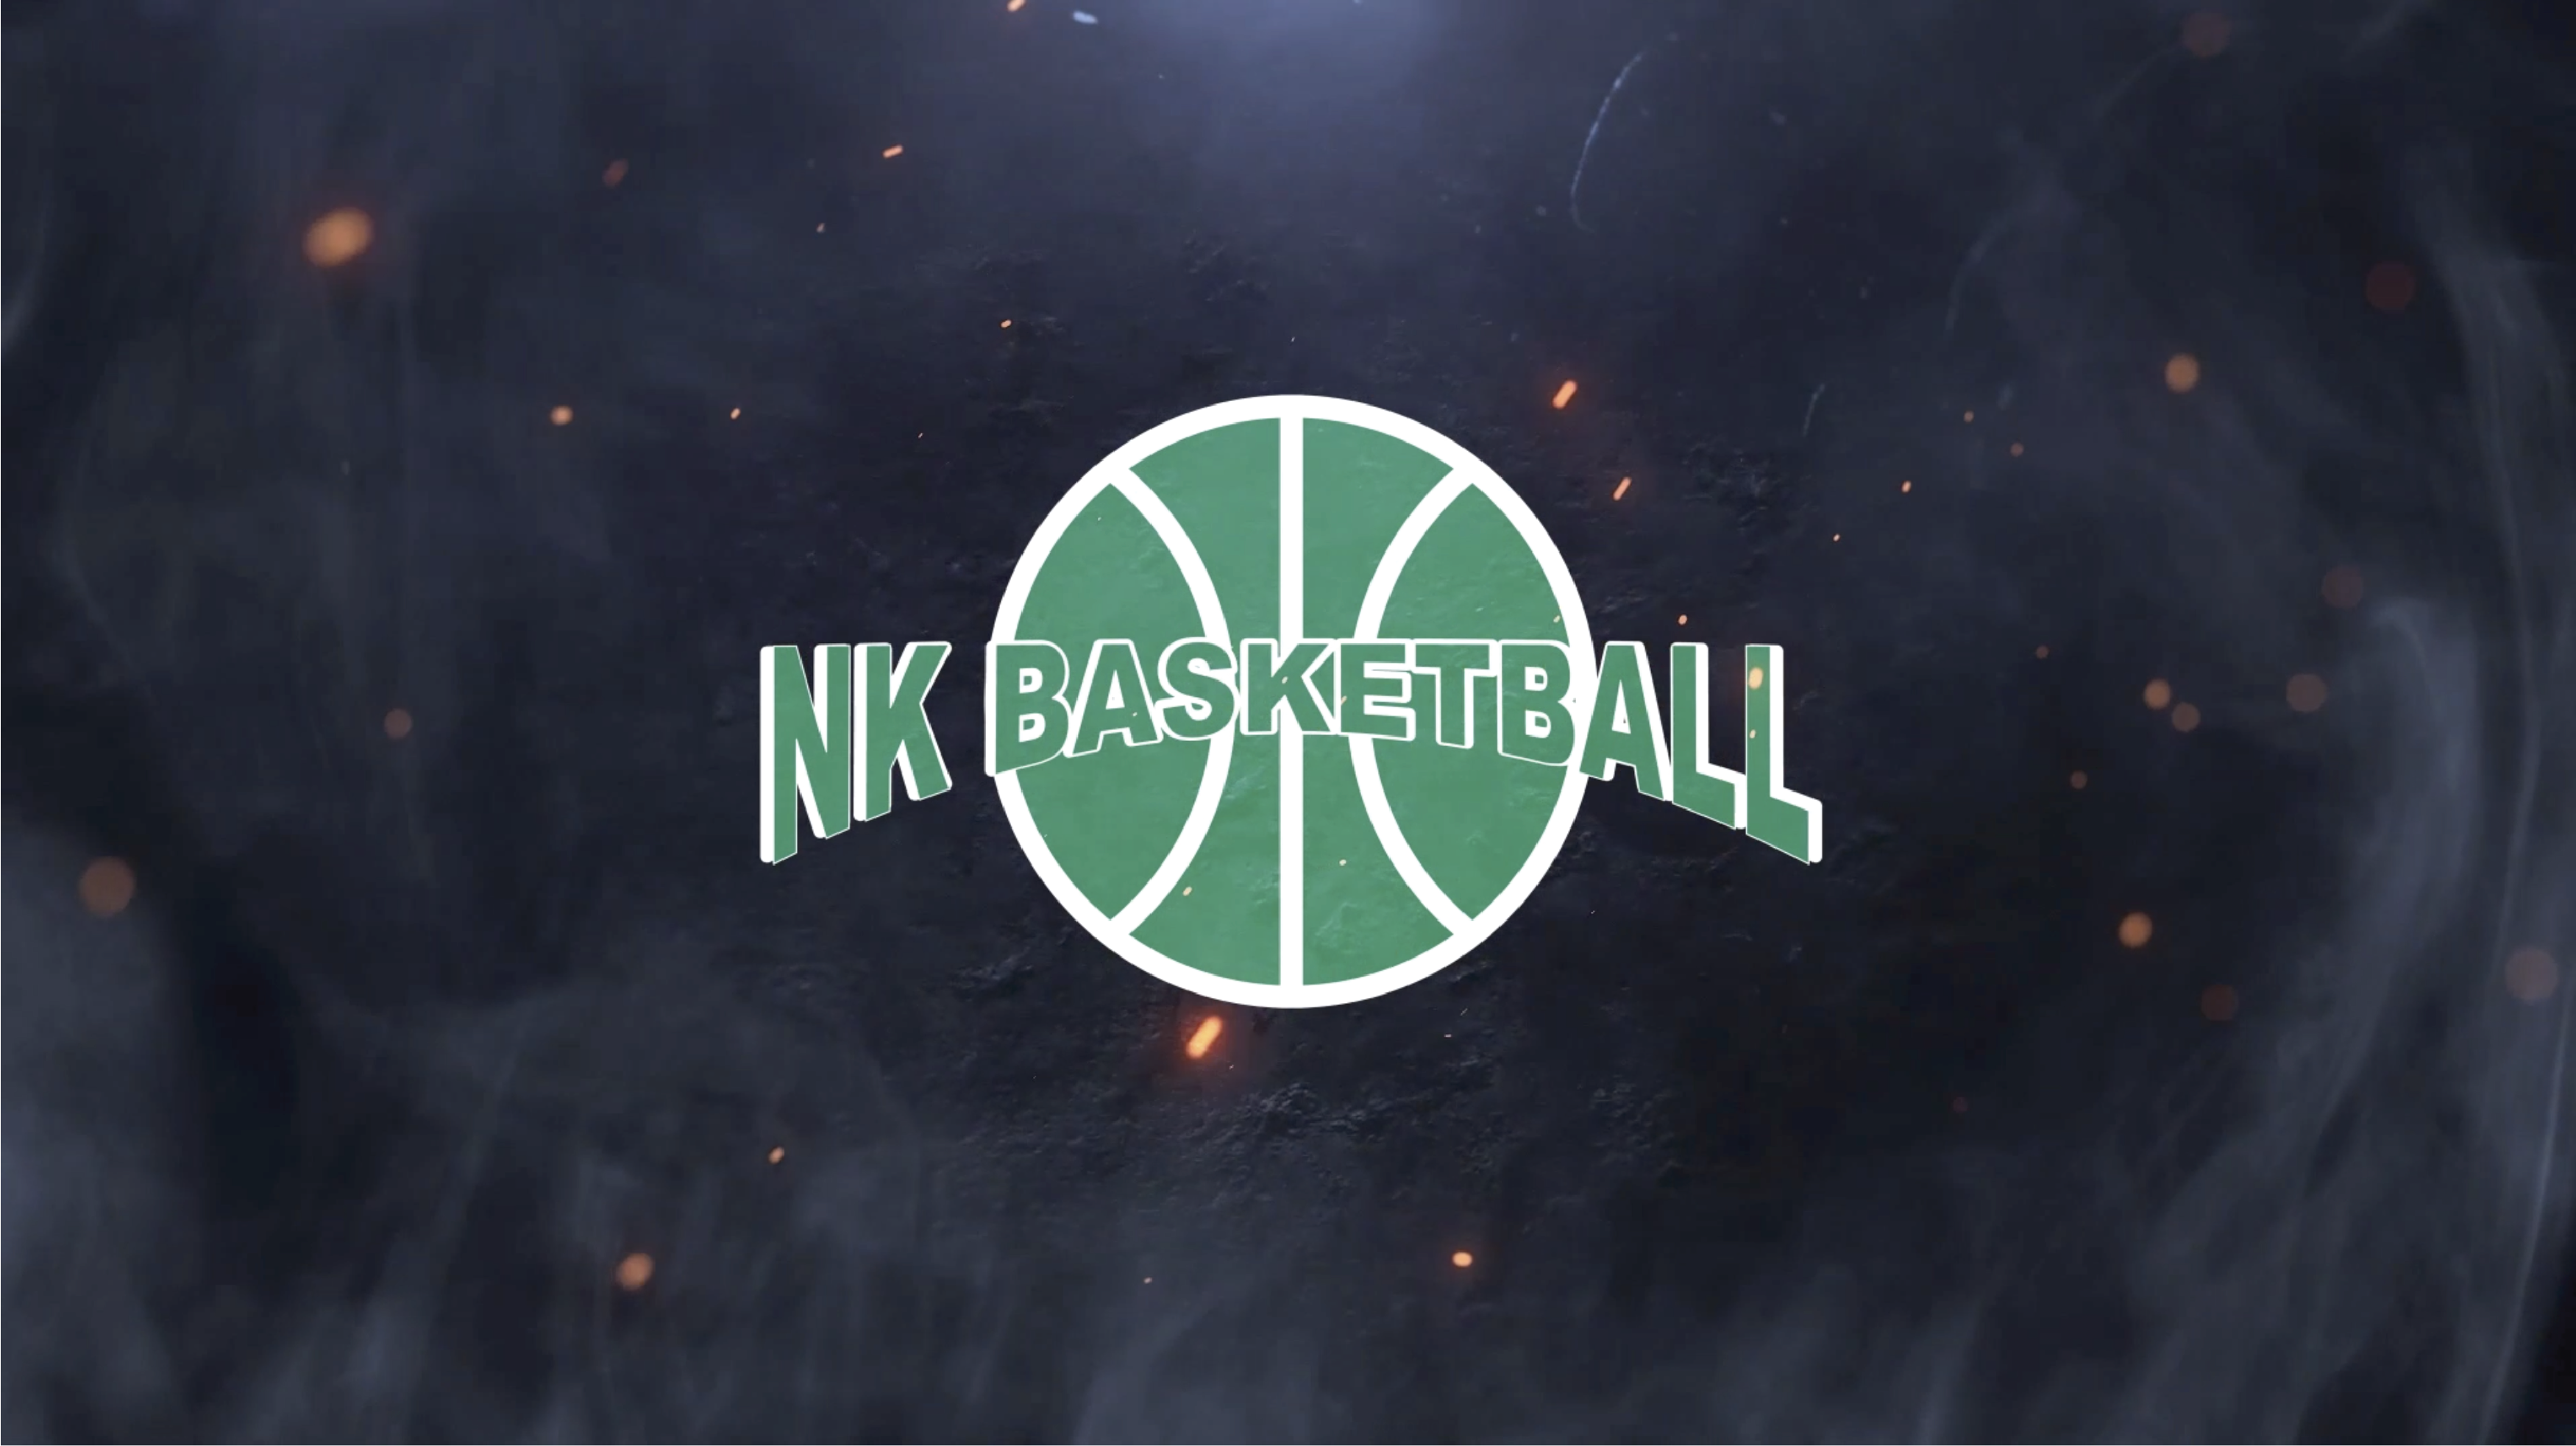 NK Basketball promotion Video